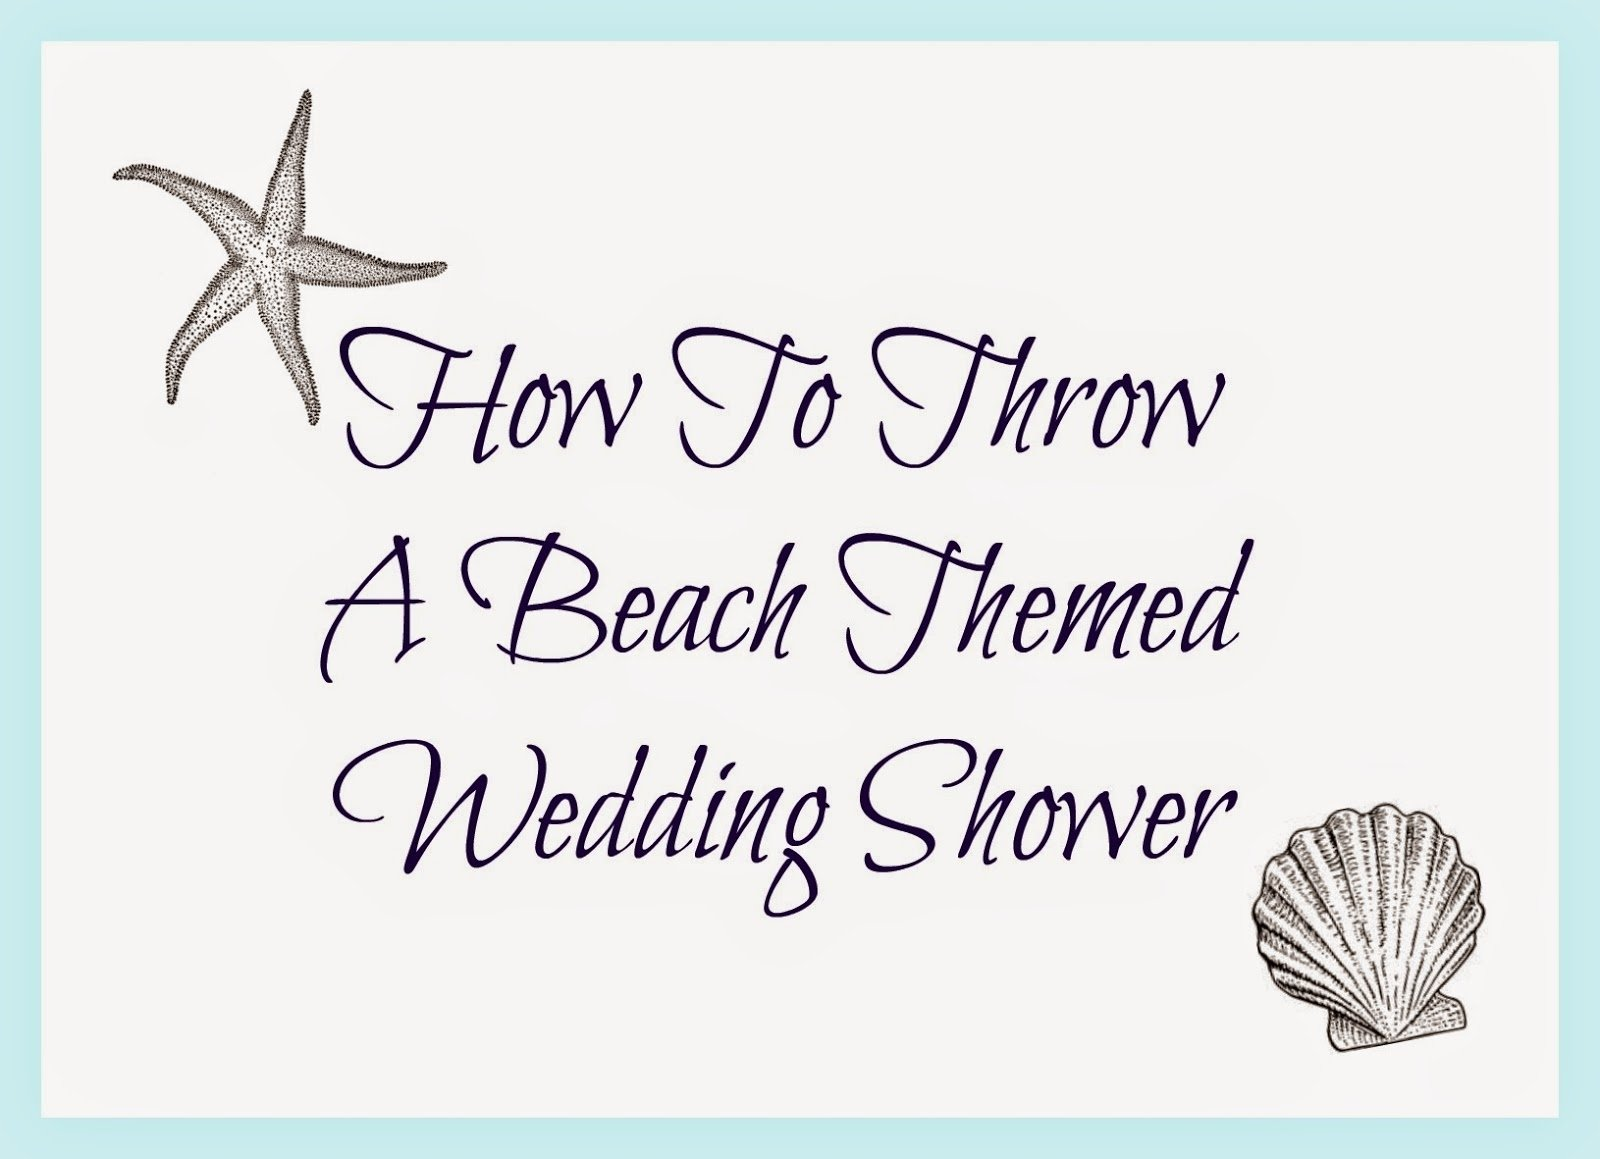 10 Most Popular Beach Themed Bridal Shower Ideas my favorite things jesss beach themed wedding shower moh may 1 2020